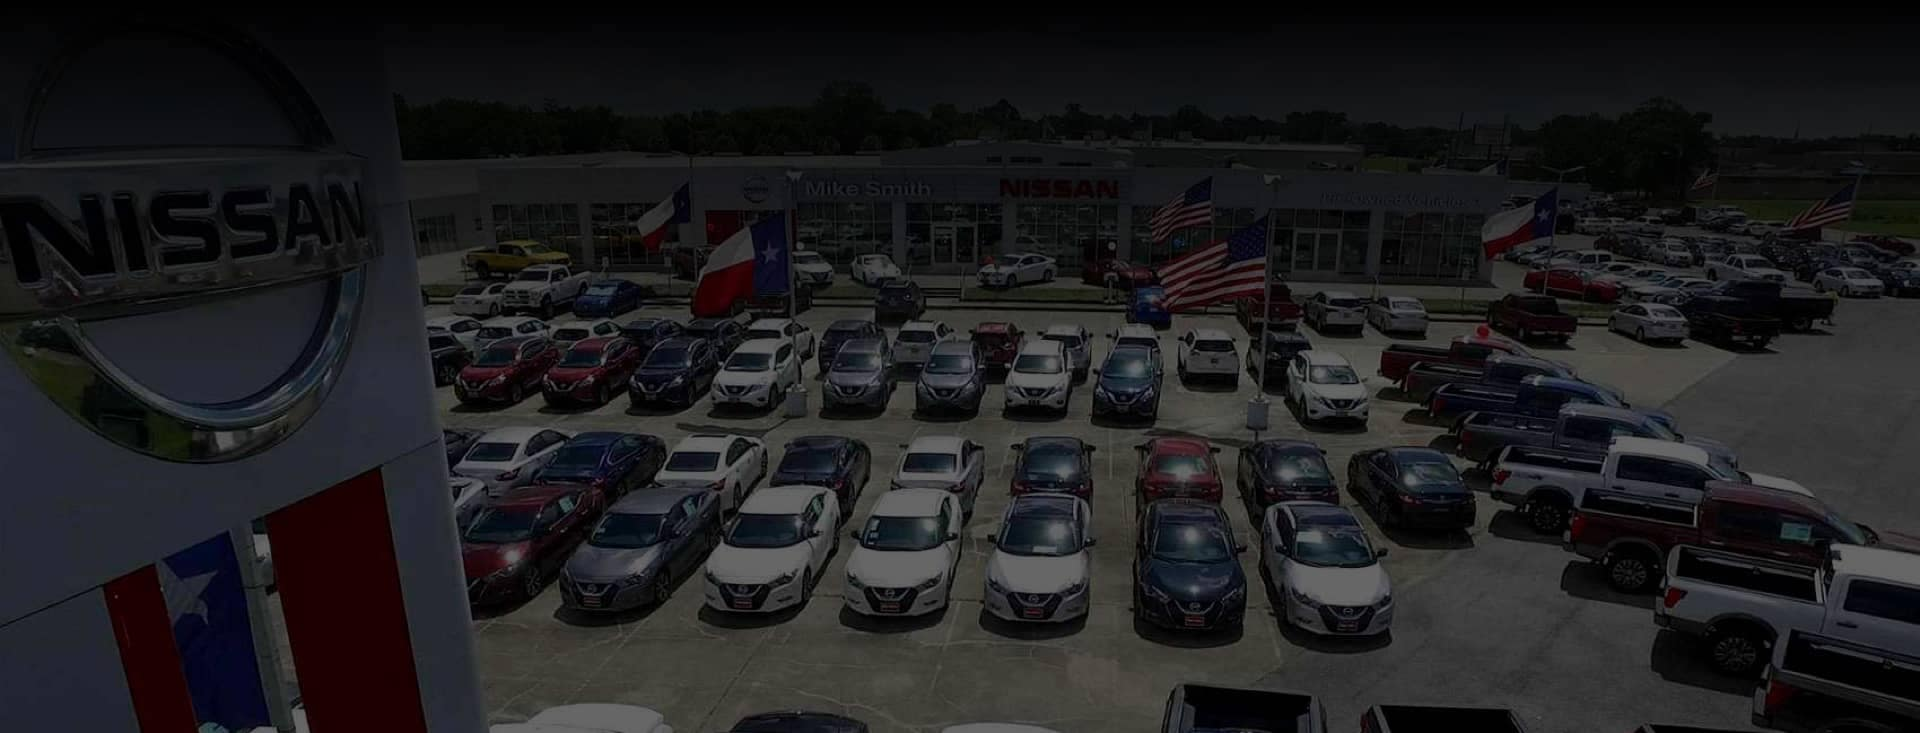 Mike Smith Nissan dealership